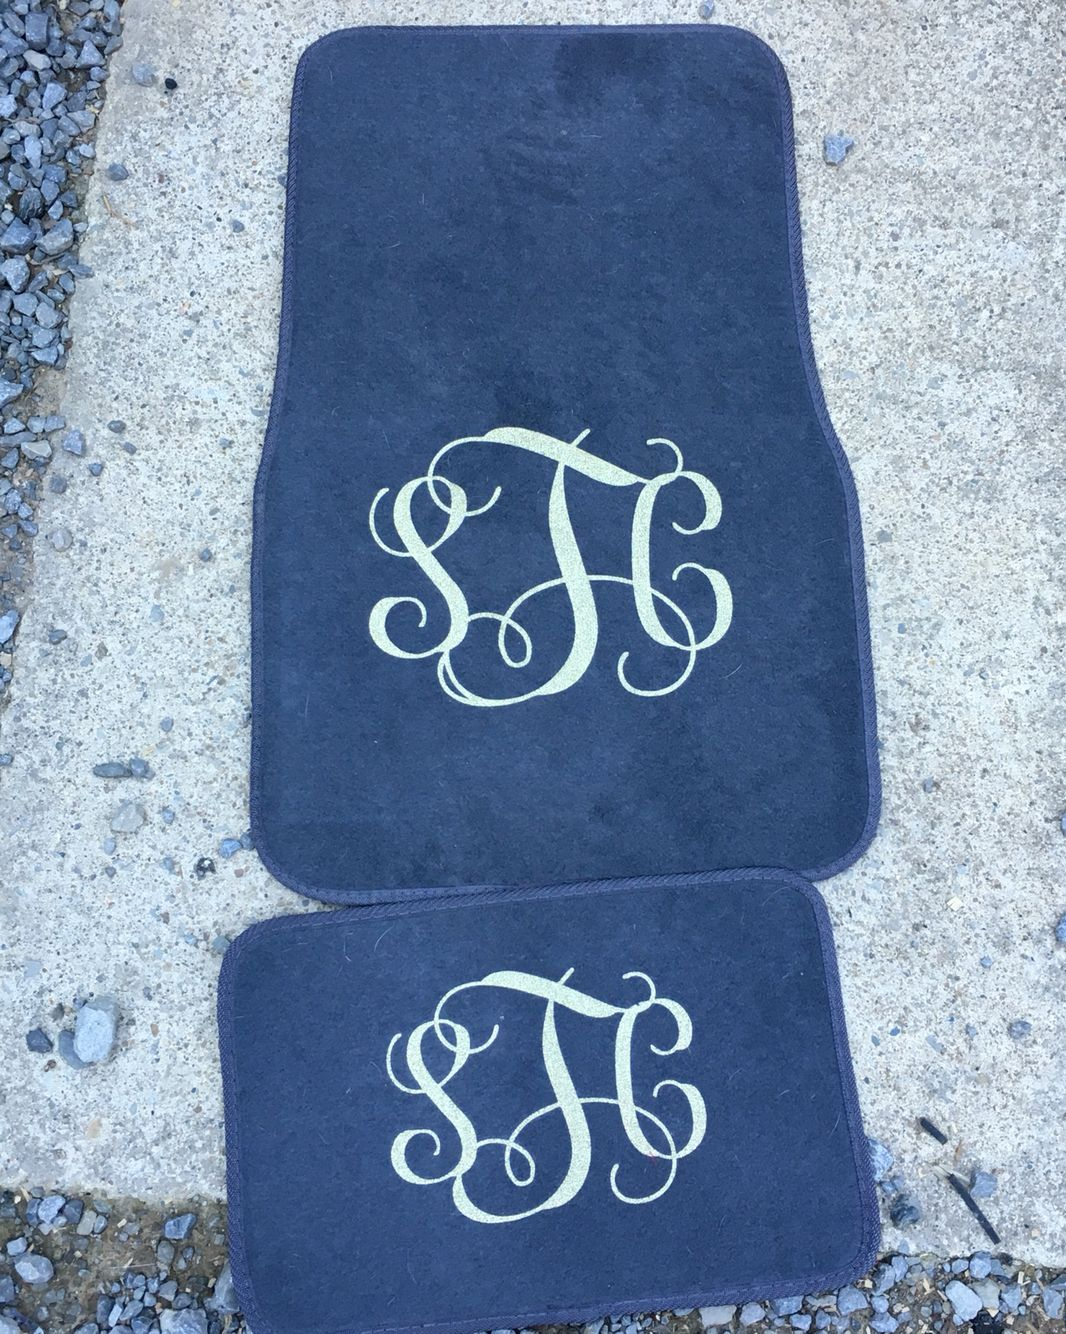 Floor mats us - Monogram Floor Mats Made By Taylormadecreations Follow Us On Etsy Taylrmadecreation And On Instagram